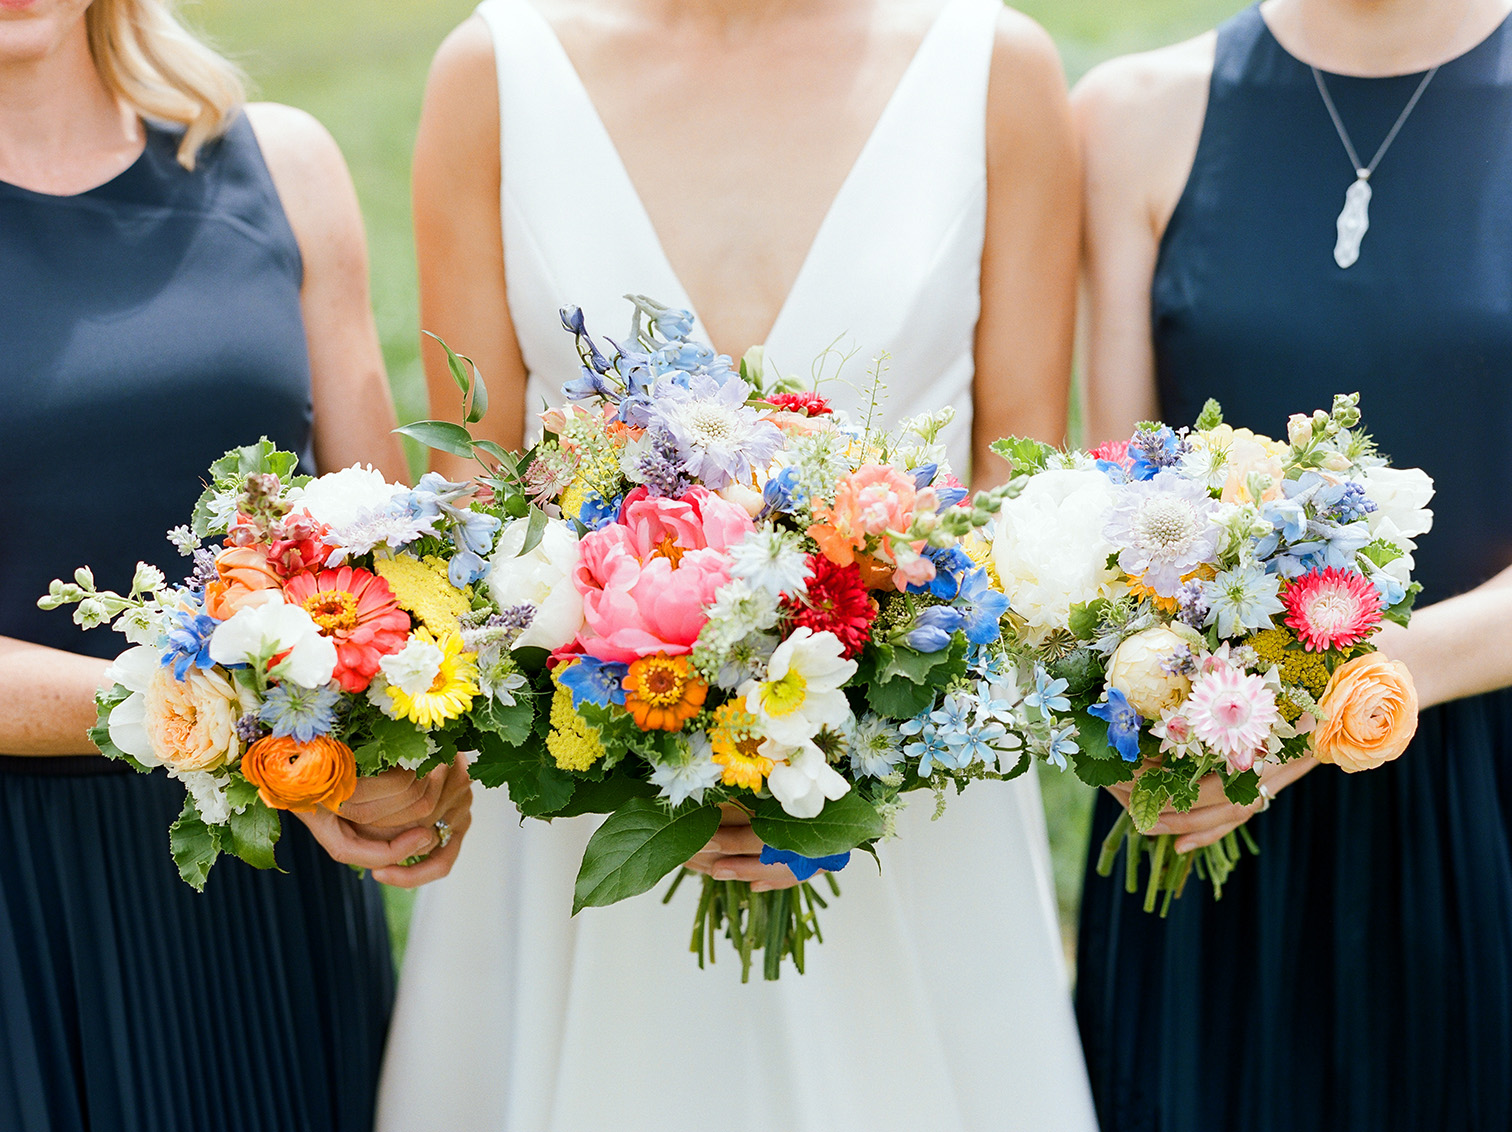 Colorado Destination Wedding Photographers, Colorful Wedding Bouquets, Denver Photographer